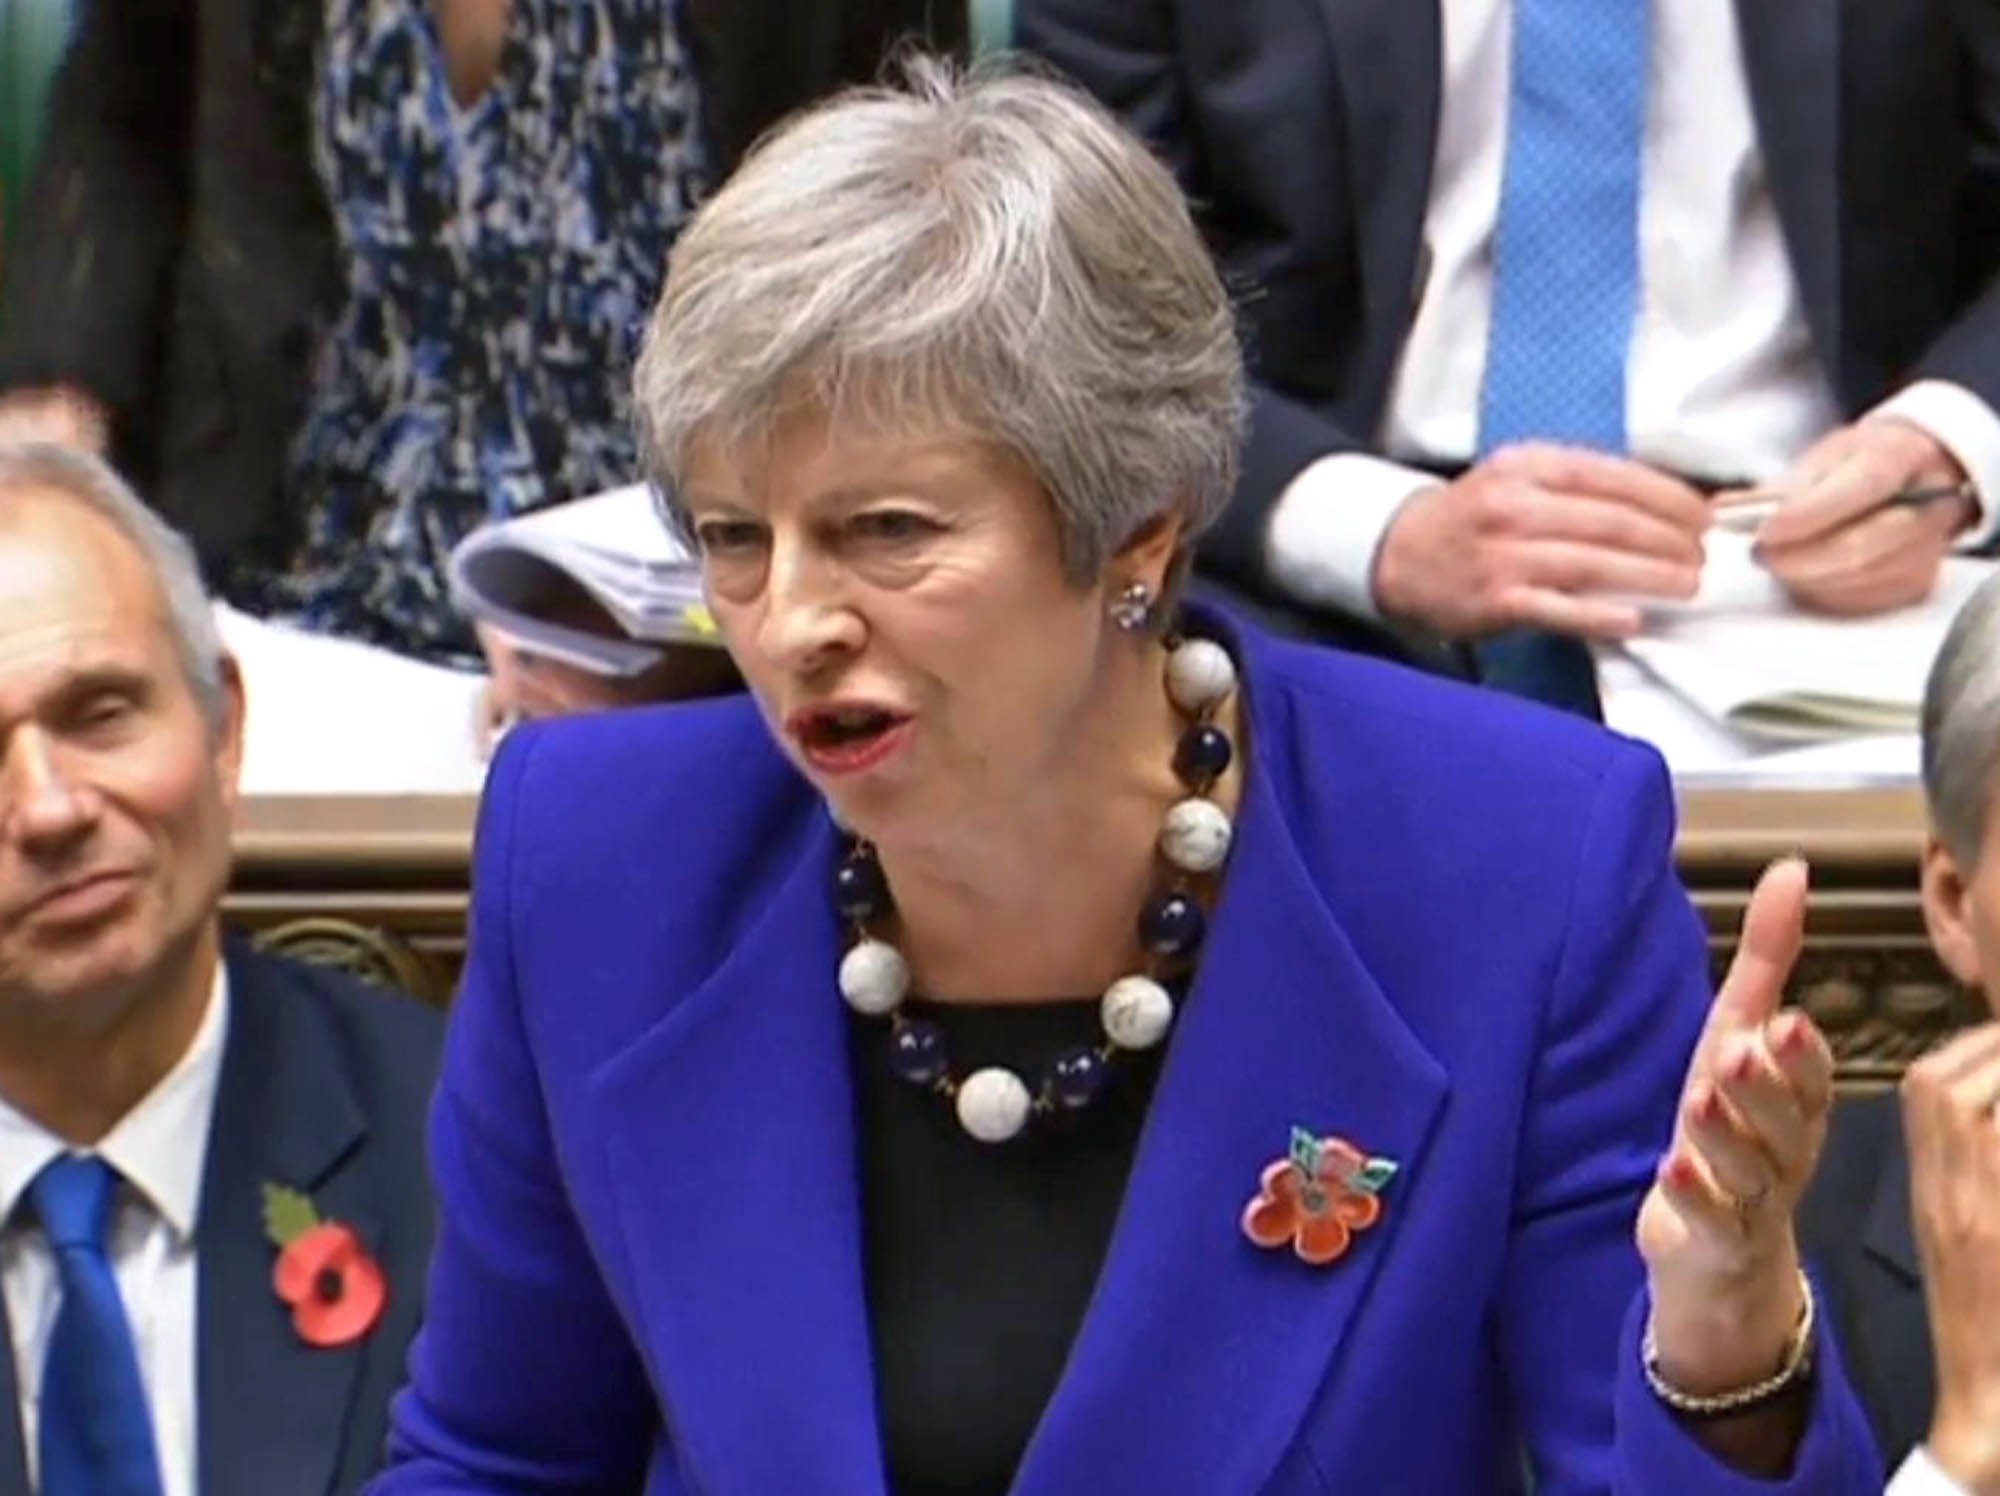 Prime Minister Theresa May speaks during Prime Minister's Questions in the House of Commons, London. PRESS ASSOCIATION Photo. Picture date: Wednesday October 31, 2018. See PA story POLITICS PMQs May. Photo credit should read: PA Wire